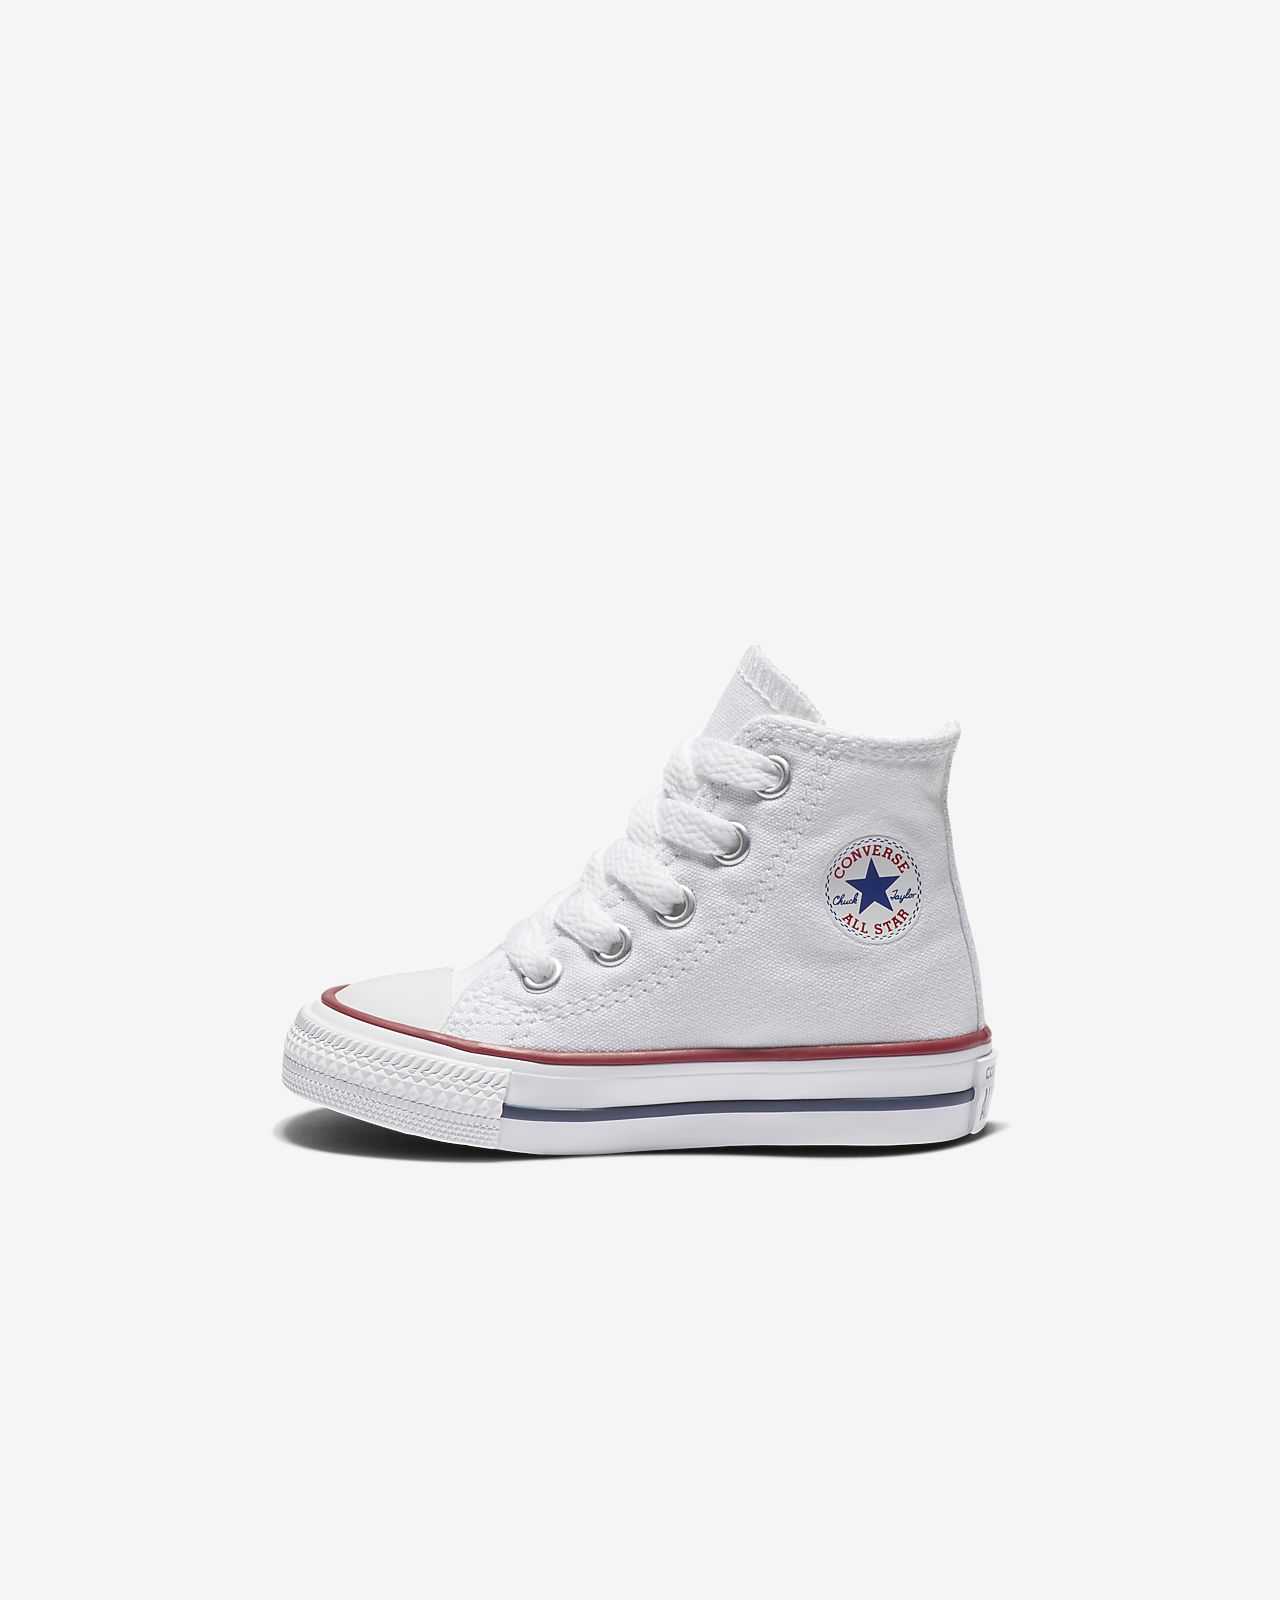 Converse Chuck Taylor All Star High Top (2c-10c) Infant Toddler Shoe ... 395e0fccb